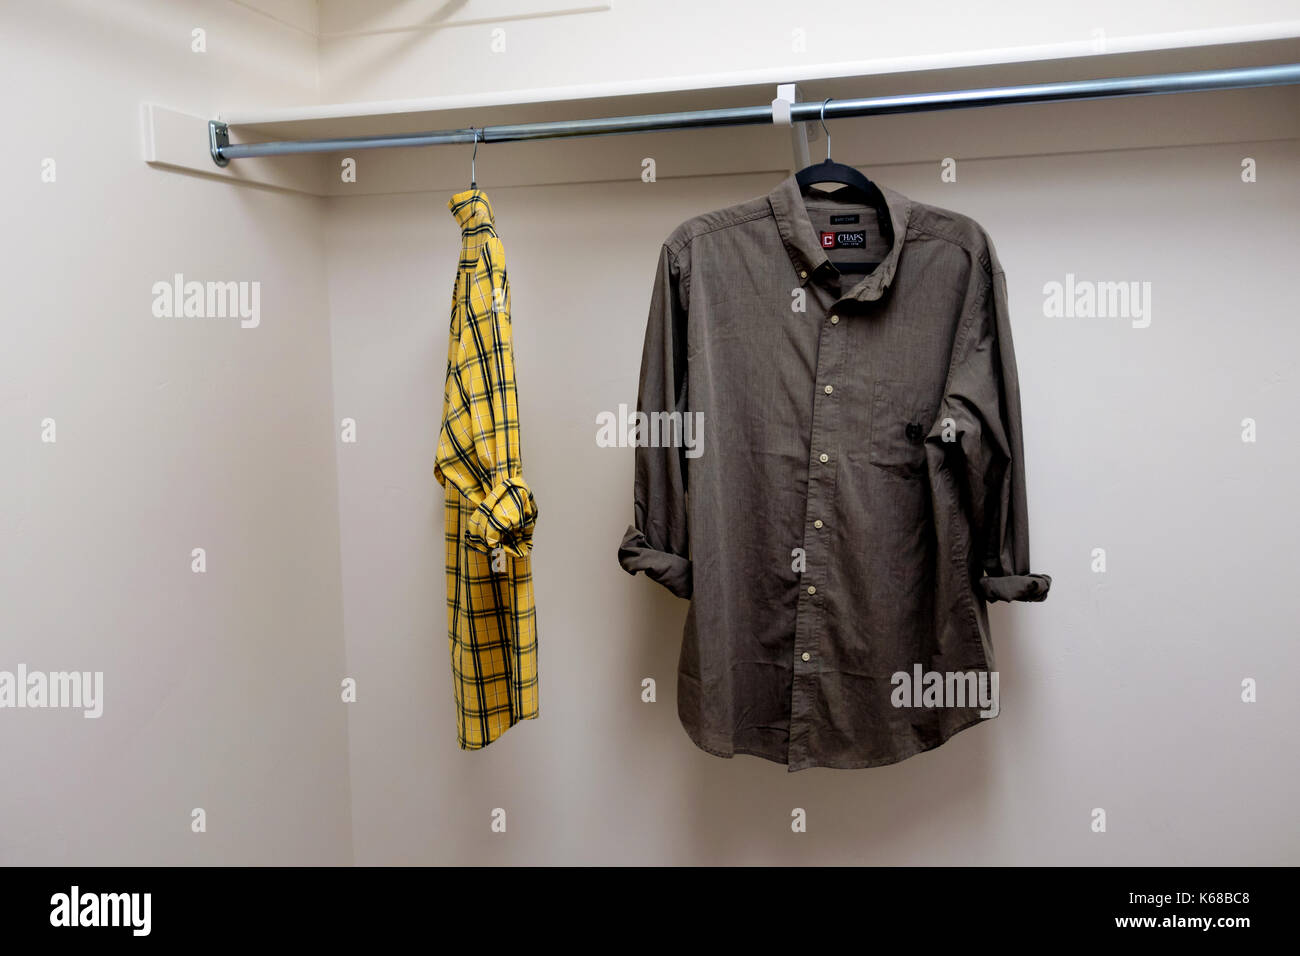 A walk-in closet full of men's short sleeved button up sleeves. - Stock Image